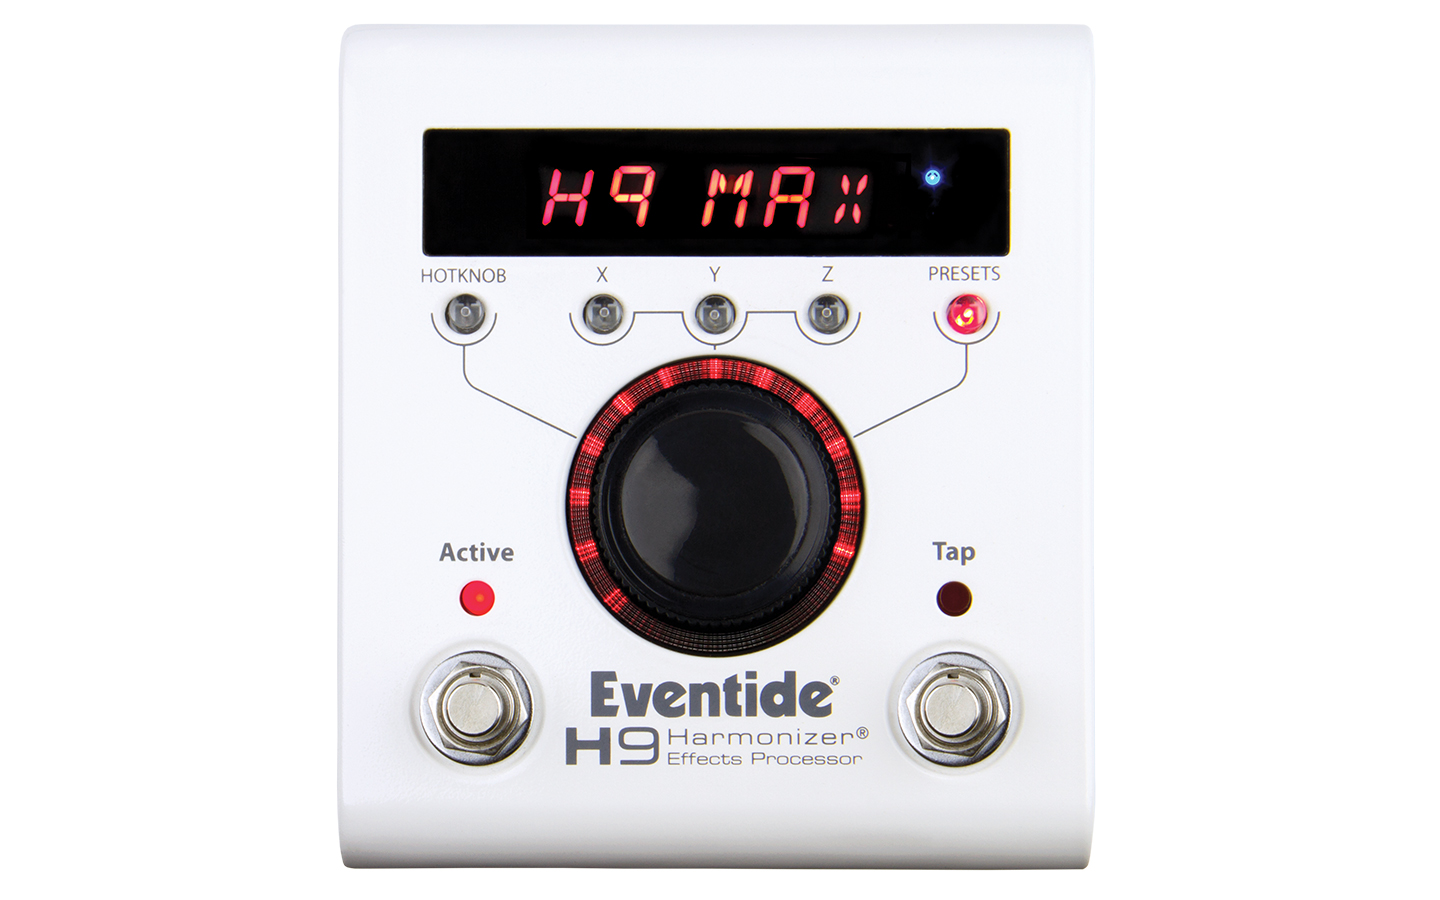 Eventide H9 Max Multi Effects Pedal delay reverb modulation pitch shift distortion